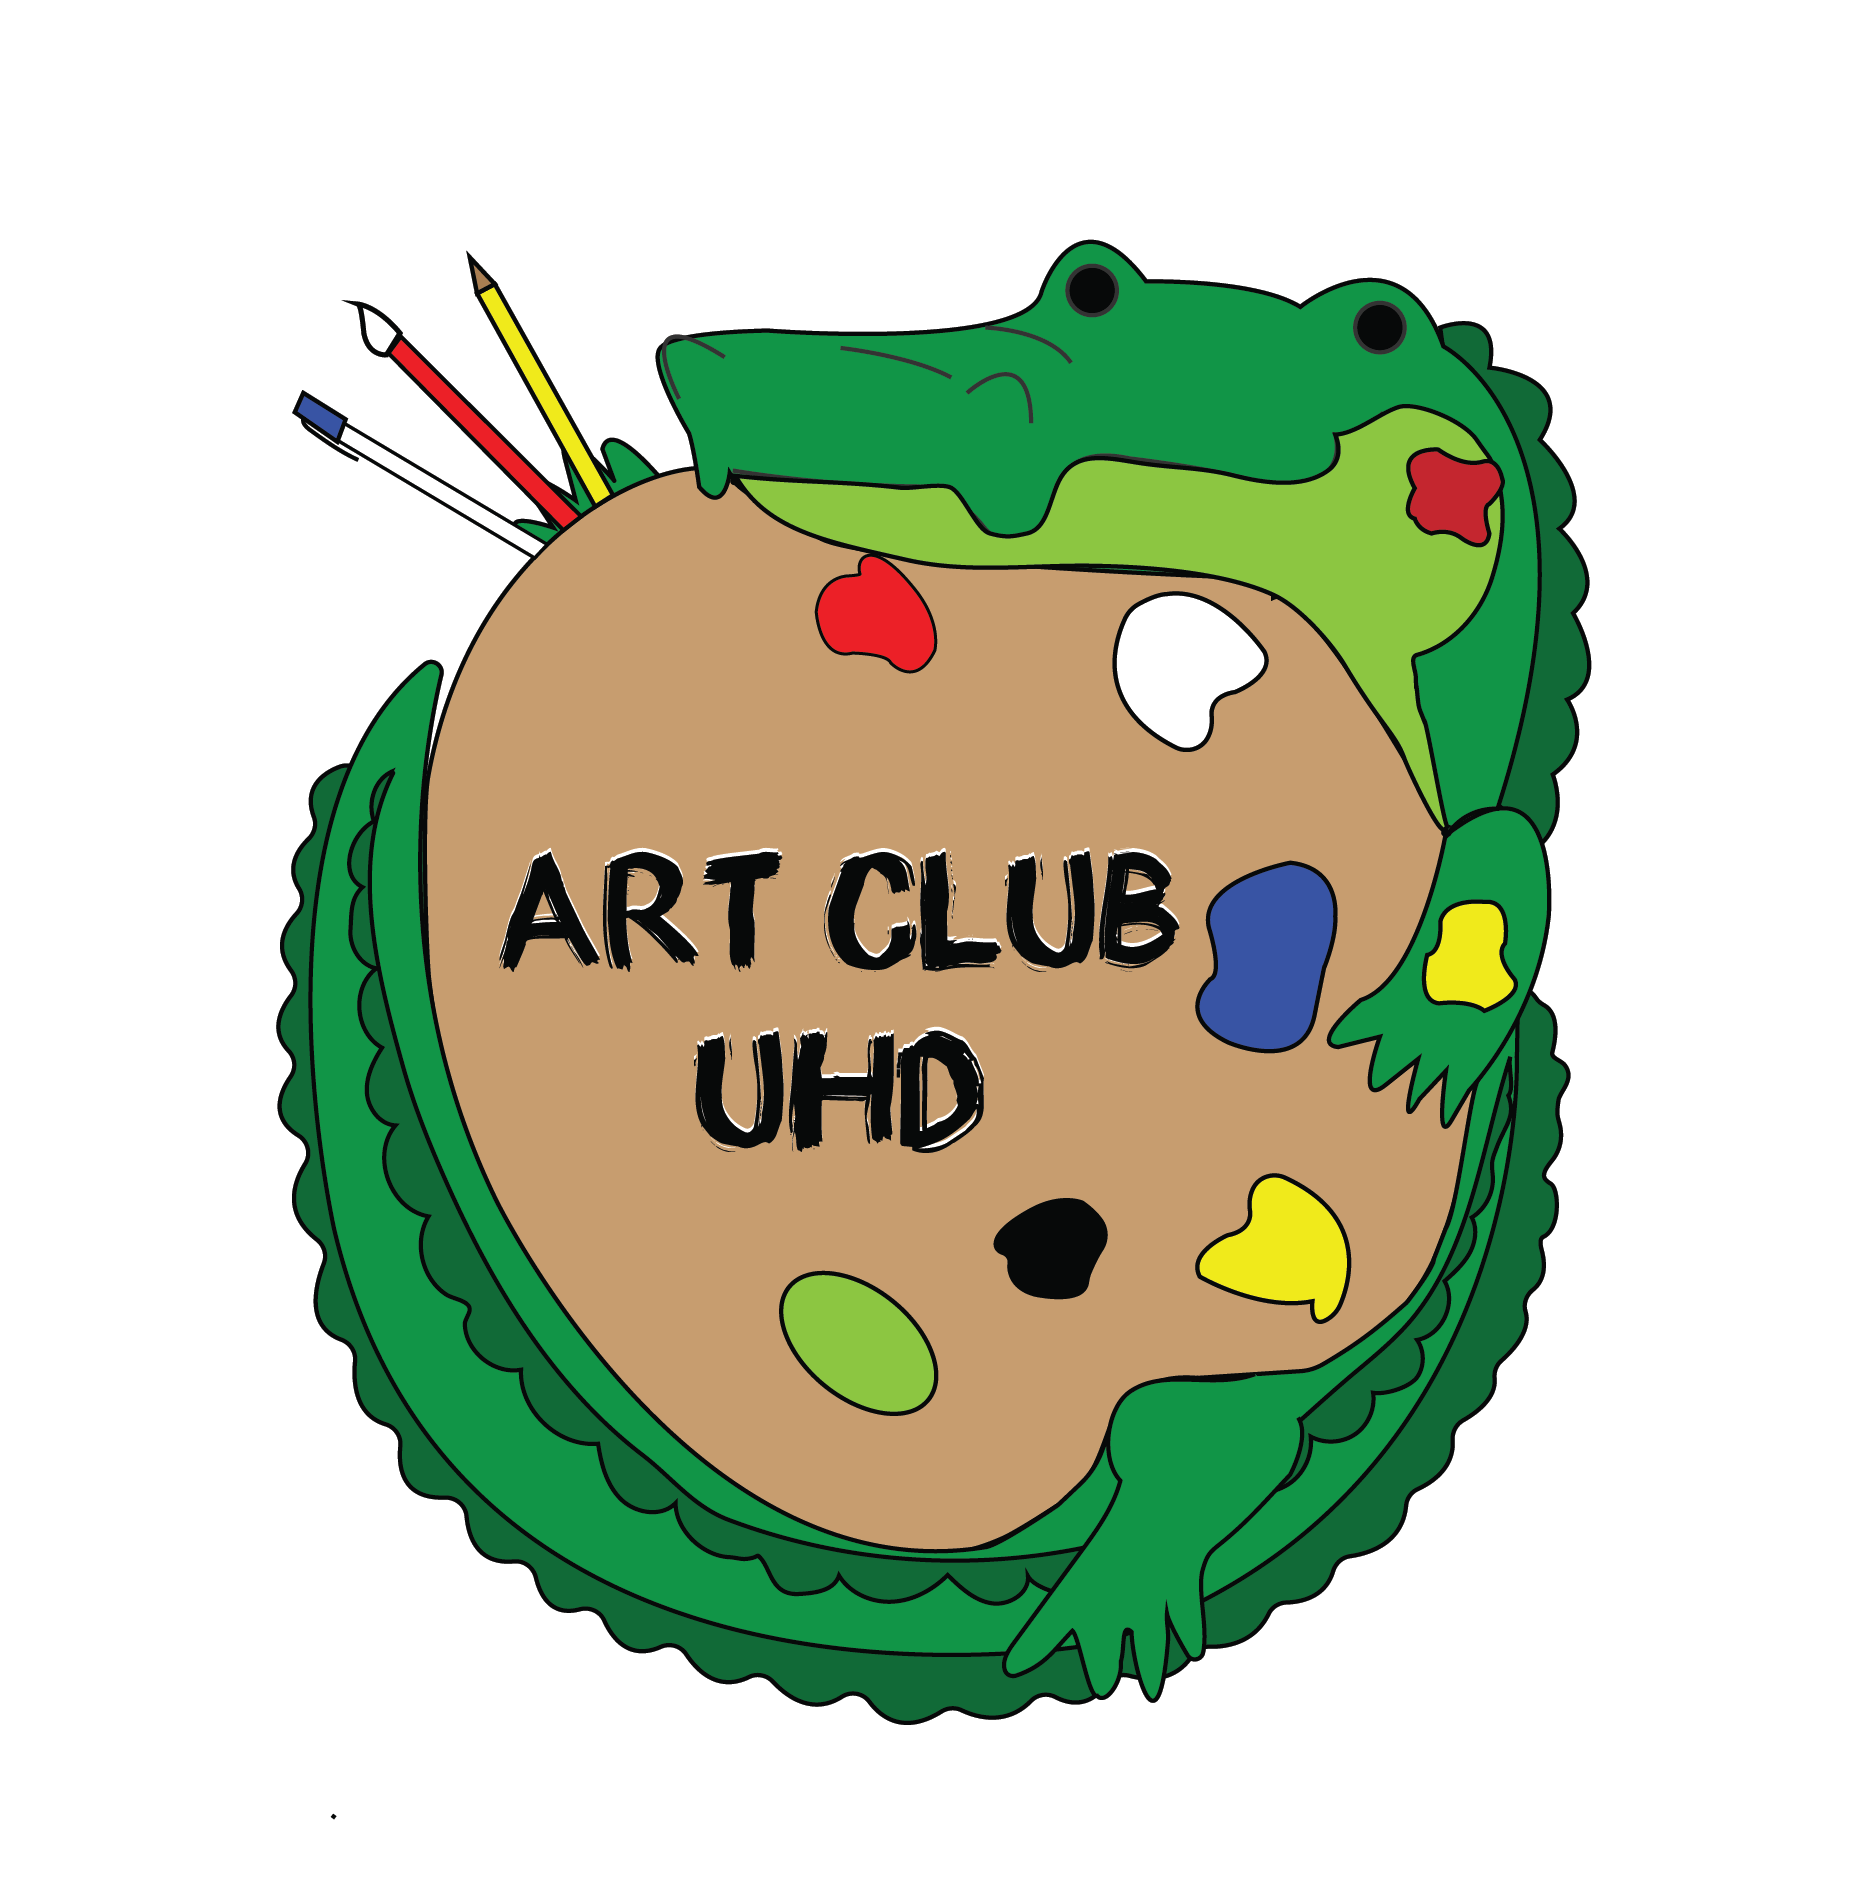 Art Club UHD Circle Logo 1